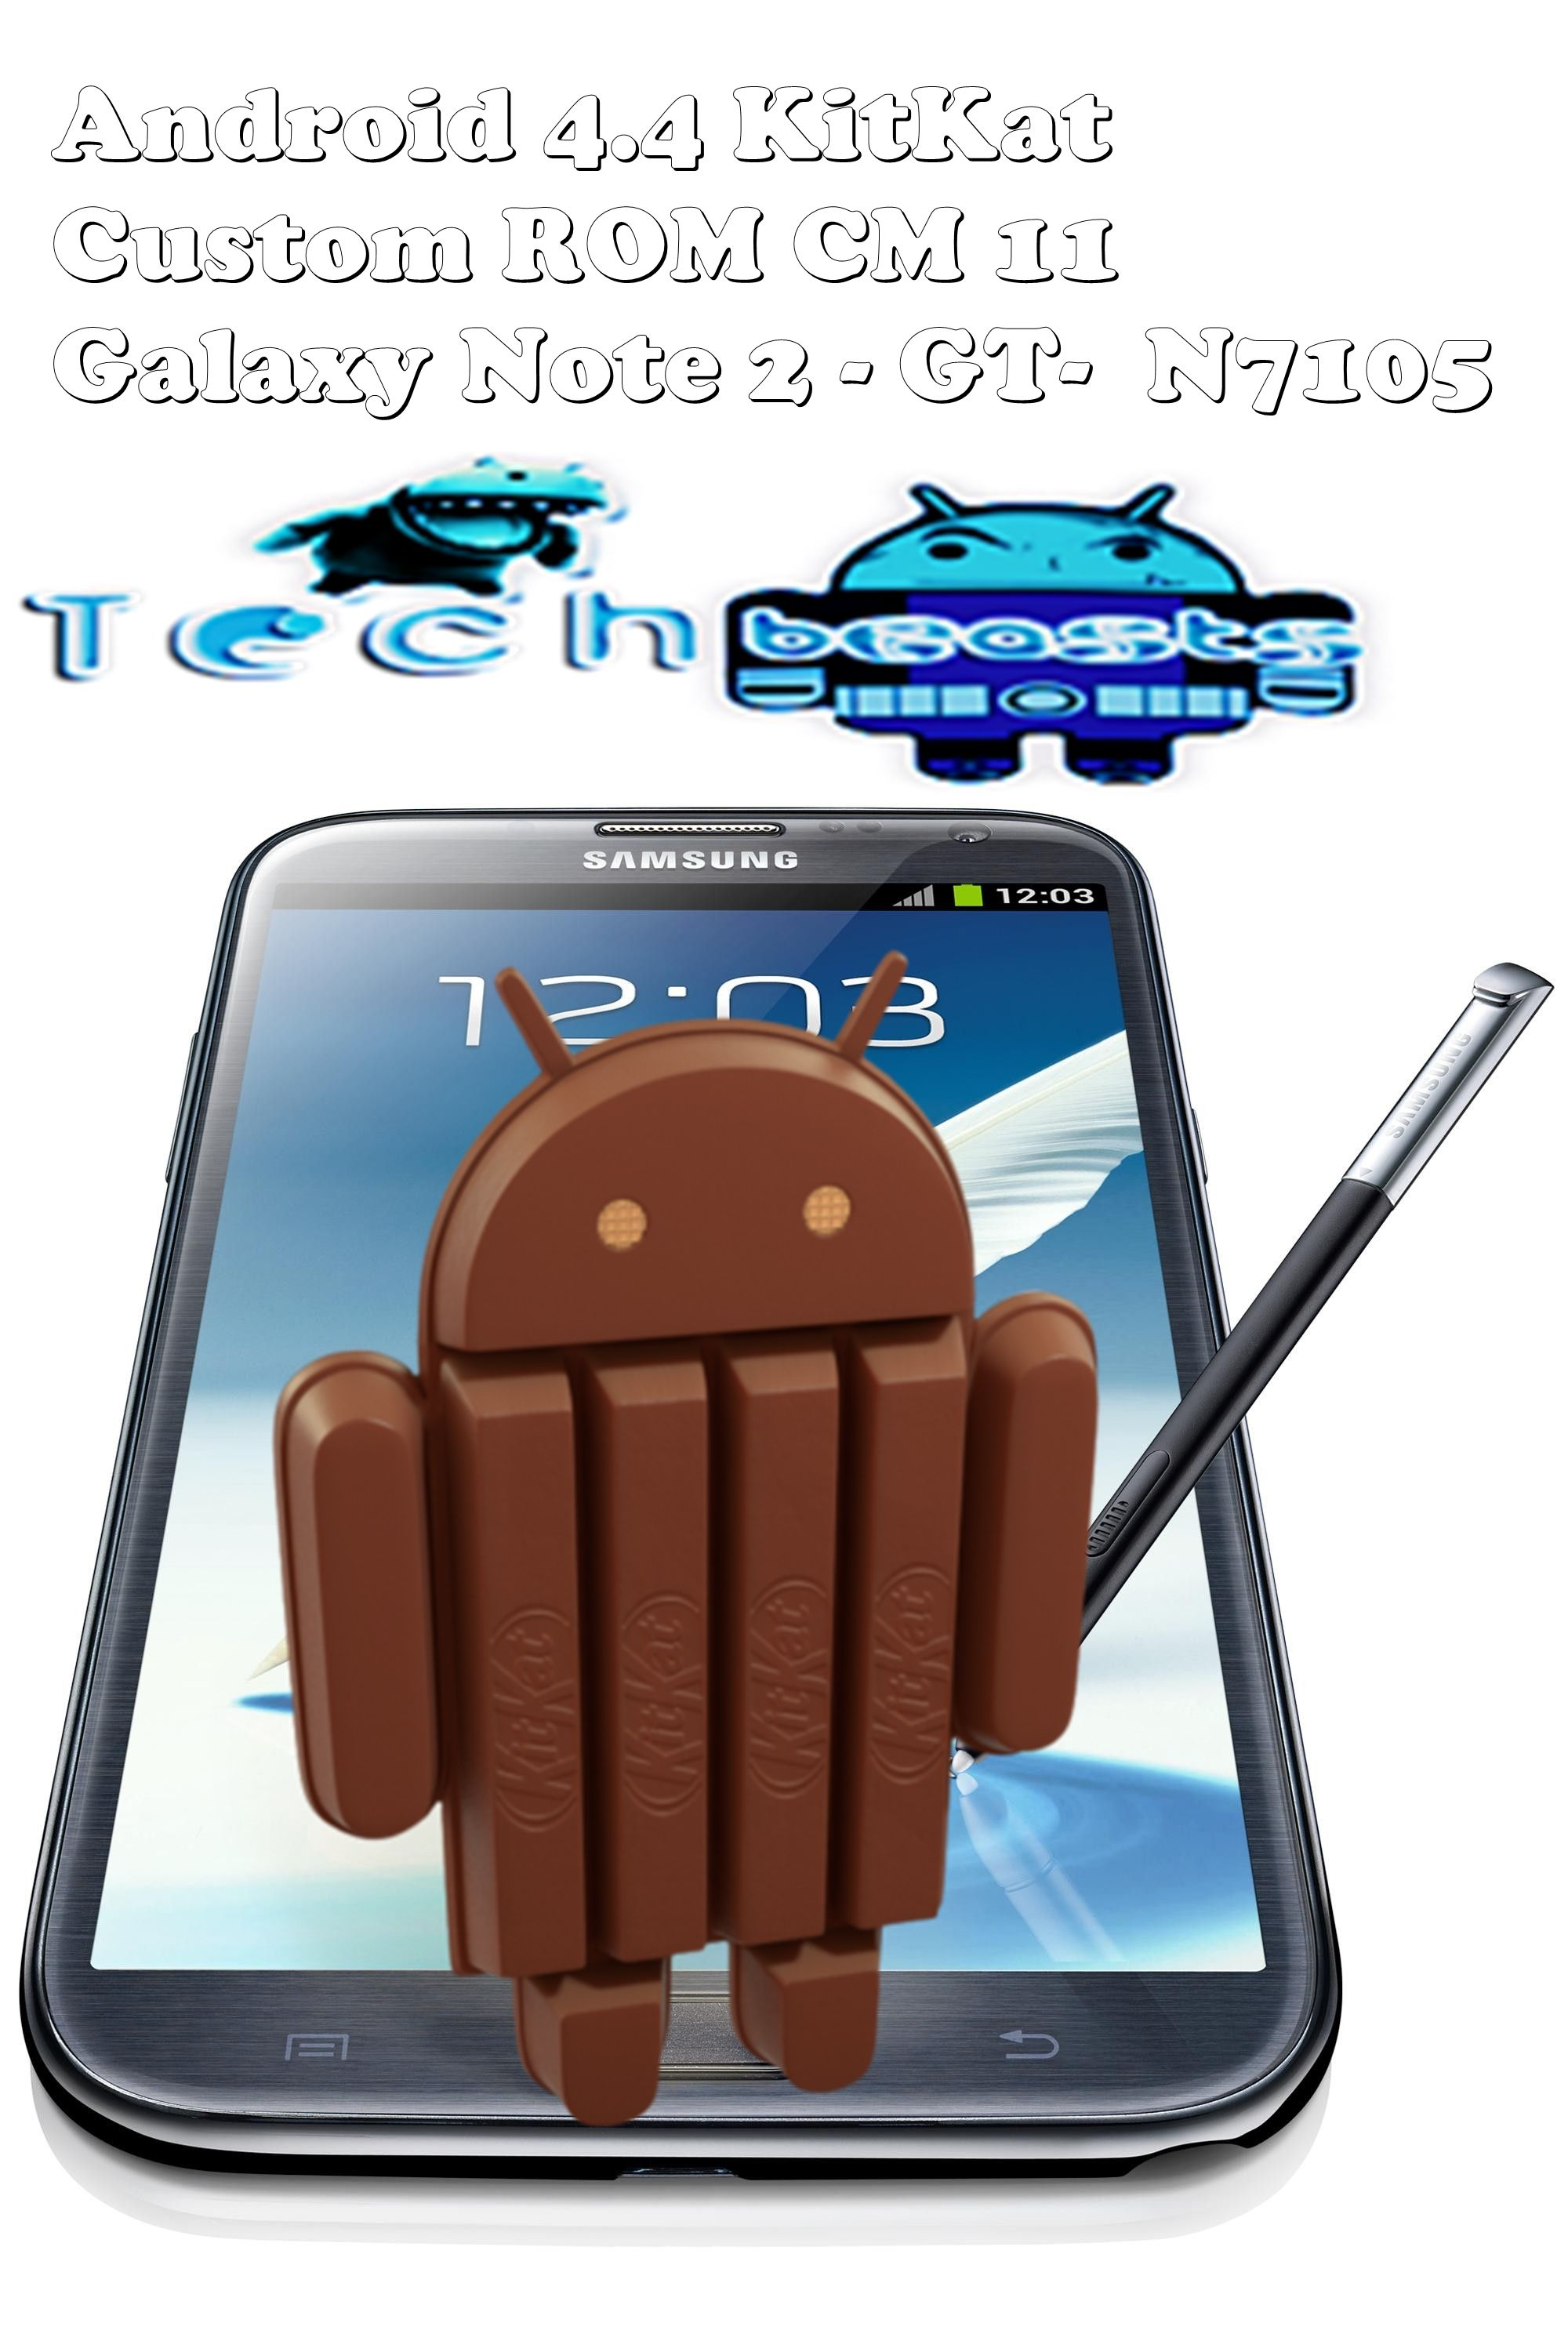 Android kitkat 4 4 2 zip file download for samsung | android 4 4 2